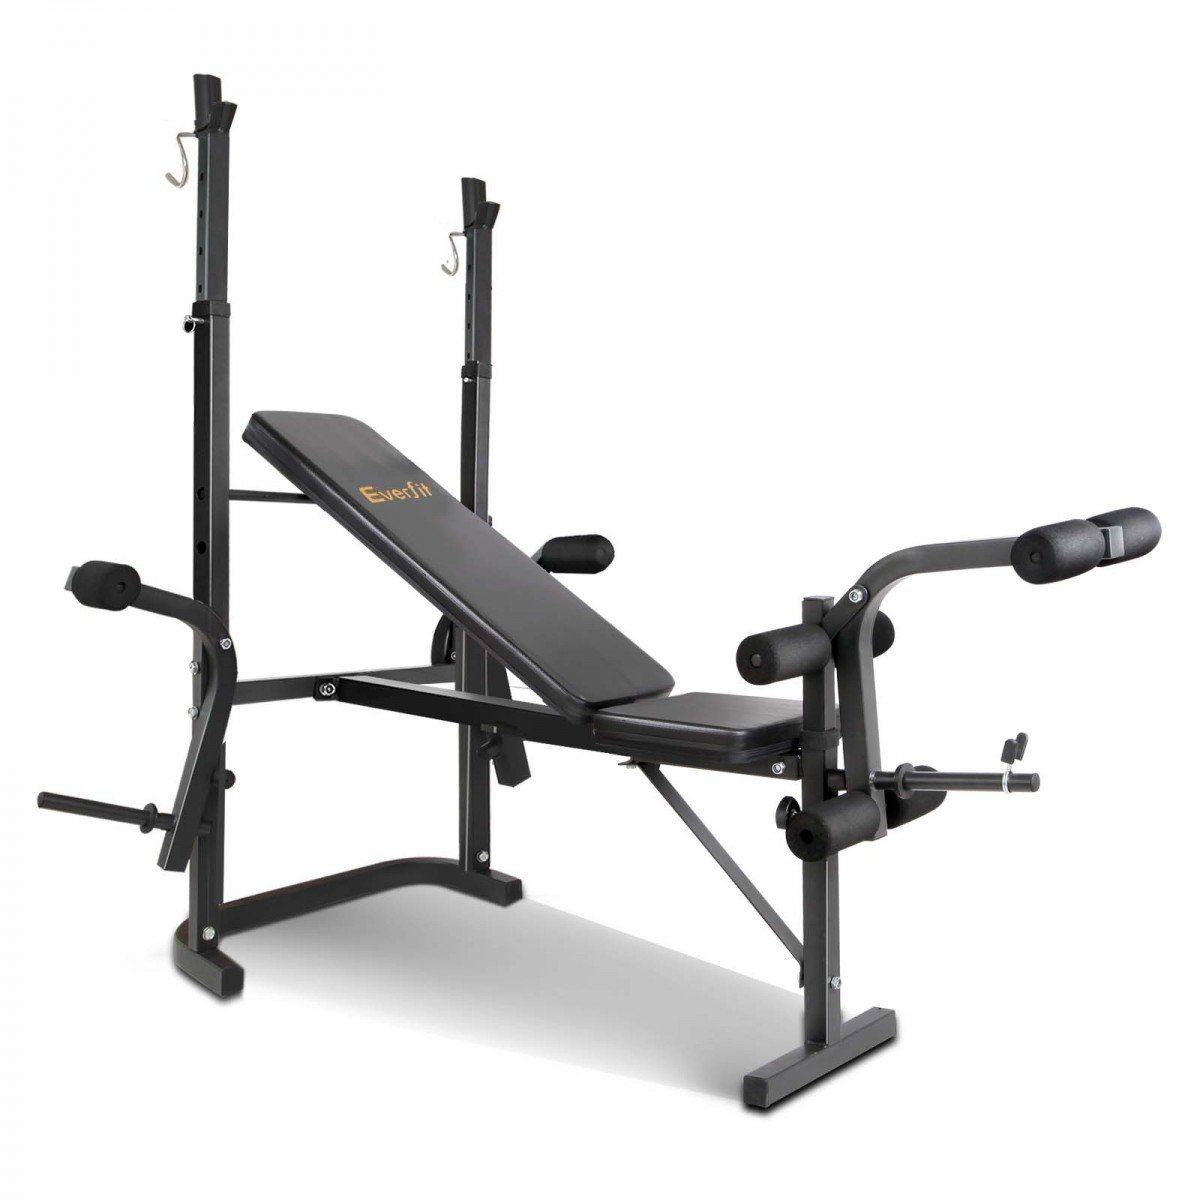 7-in-1 Multi-Station Home Weight Bench